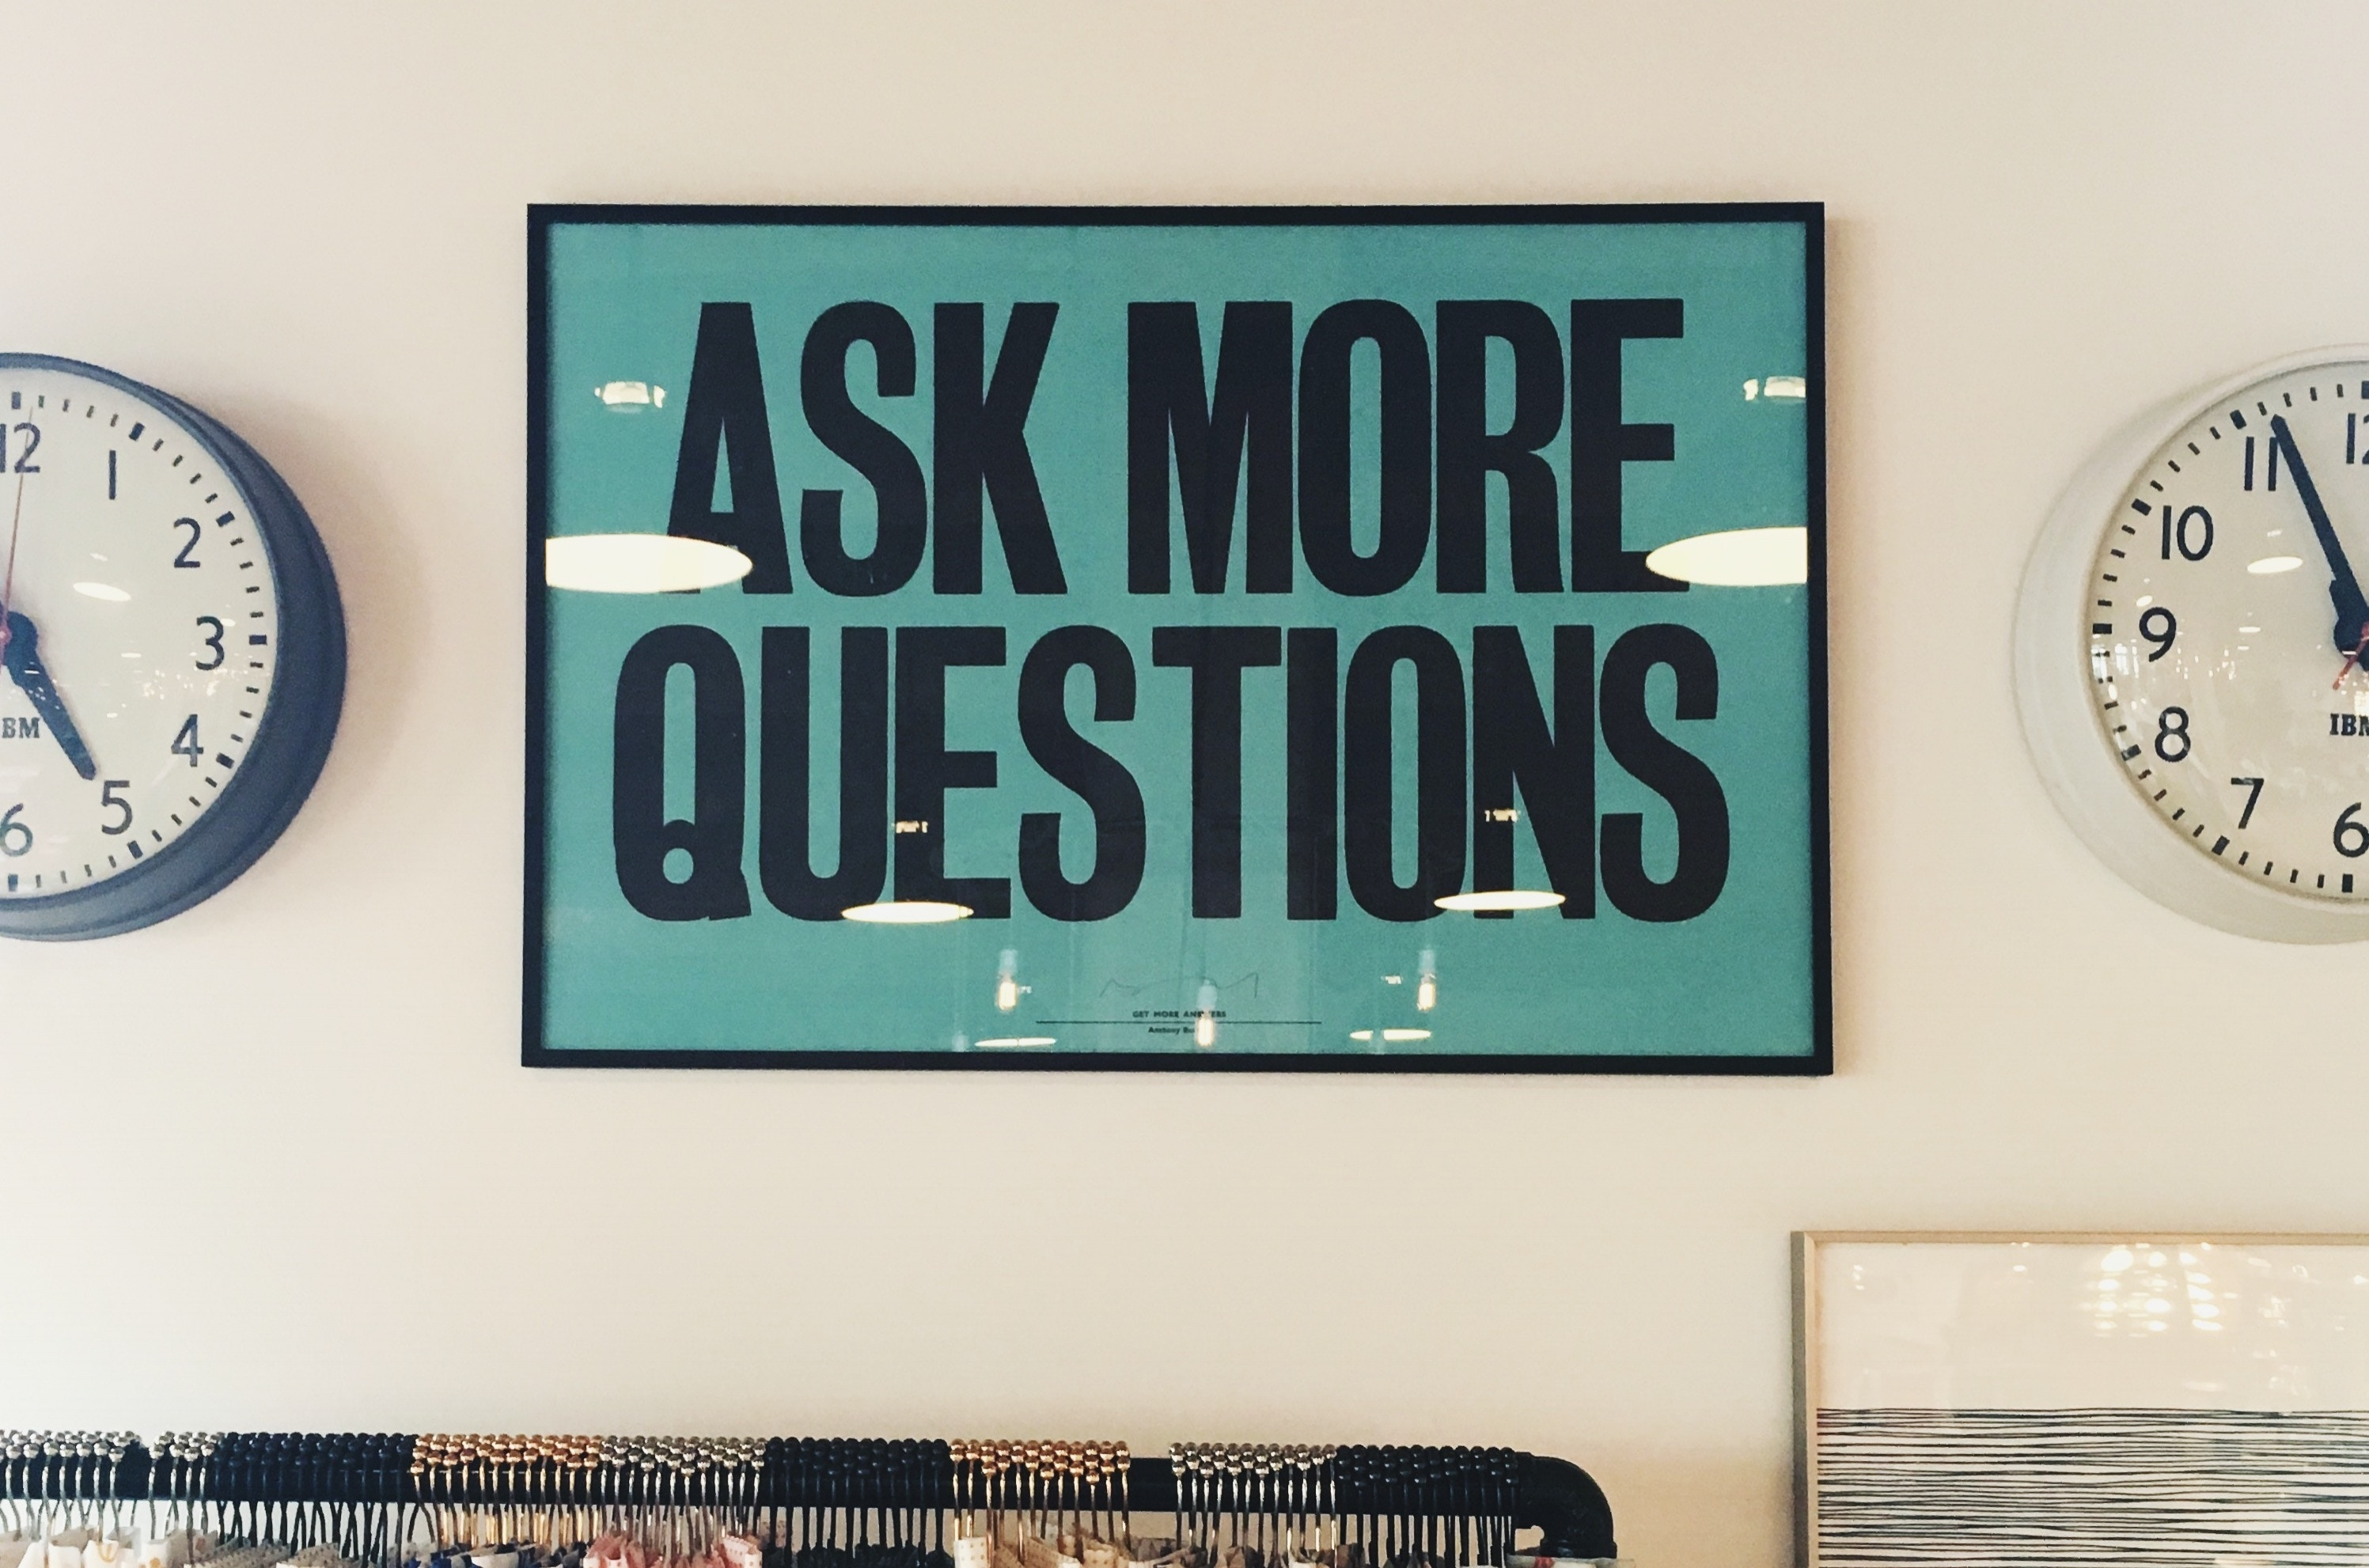 askmorequestions-blog.jpg